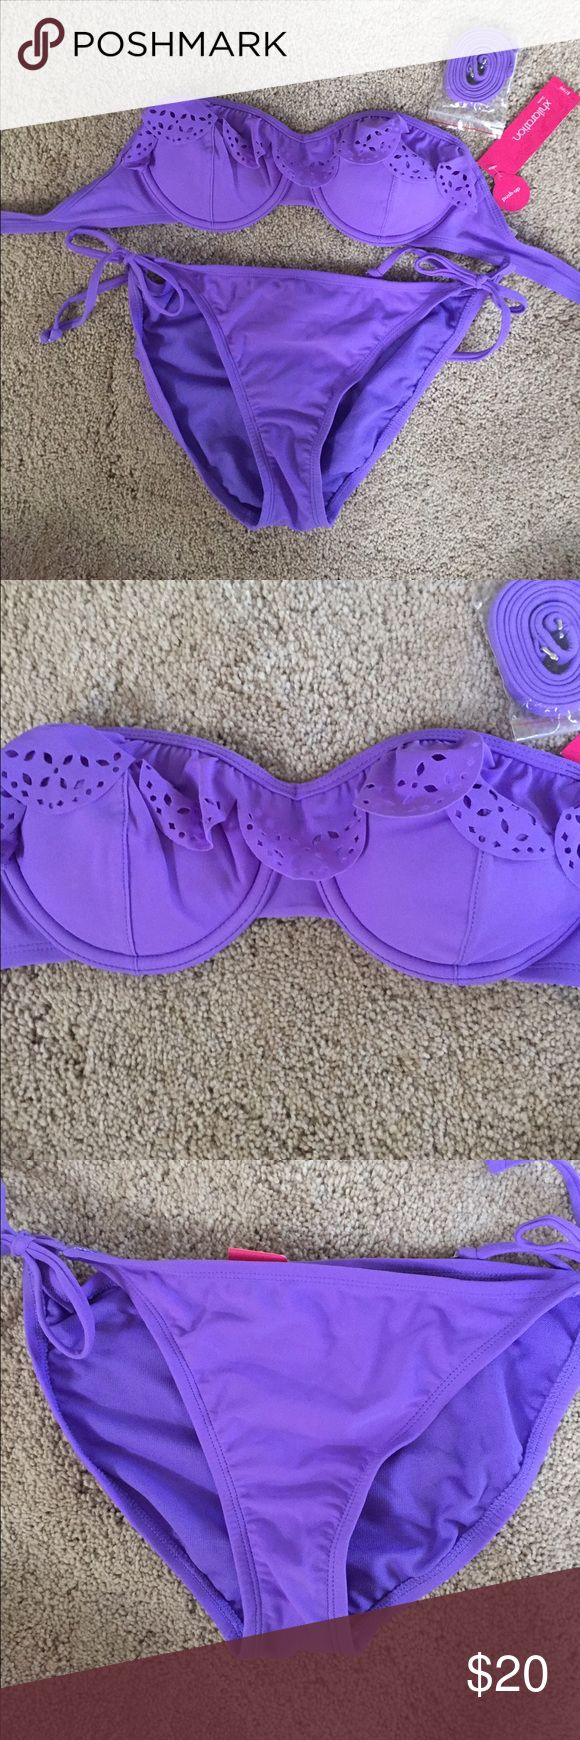 Xhilaration Purple Bikini Set Bikini set with underwire, ruffles, and padding in the top. String tie bikini bottoms. Removable halter strap. Size small. New, never worn Xhilaration Swim Bikinis